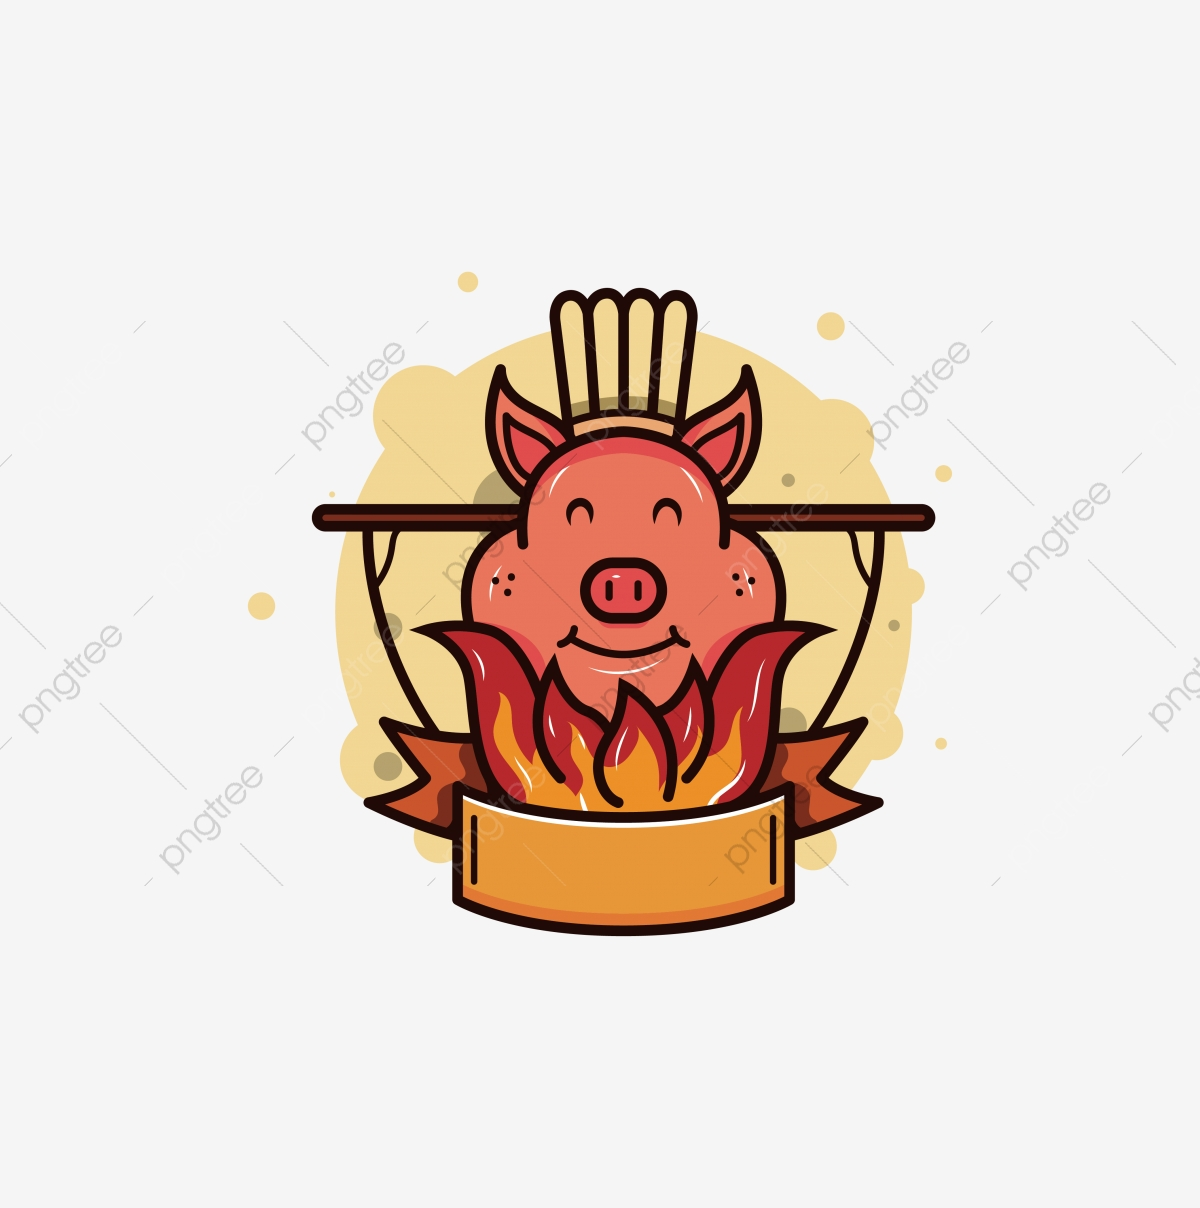 Cartoon Get Together Bbq Pork Roast Pig Hand Pig Clipart Roast Trotters Pig Feet Png And Vector With Transparent Background For Free Download